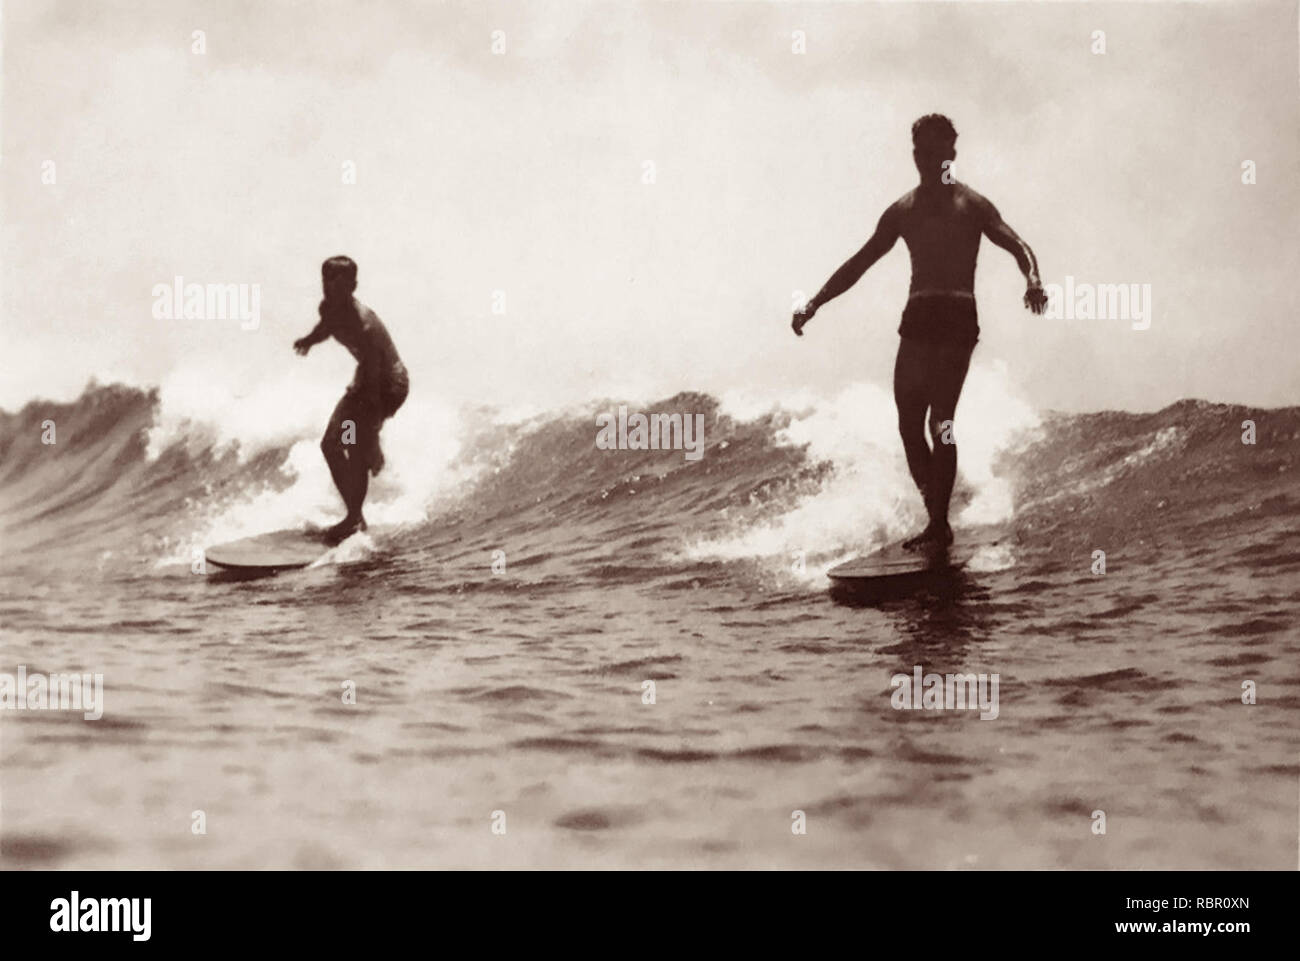 Early 20th century surfers at Waikiki, Honolulu, Territory of Hawaii. - Stock Image